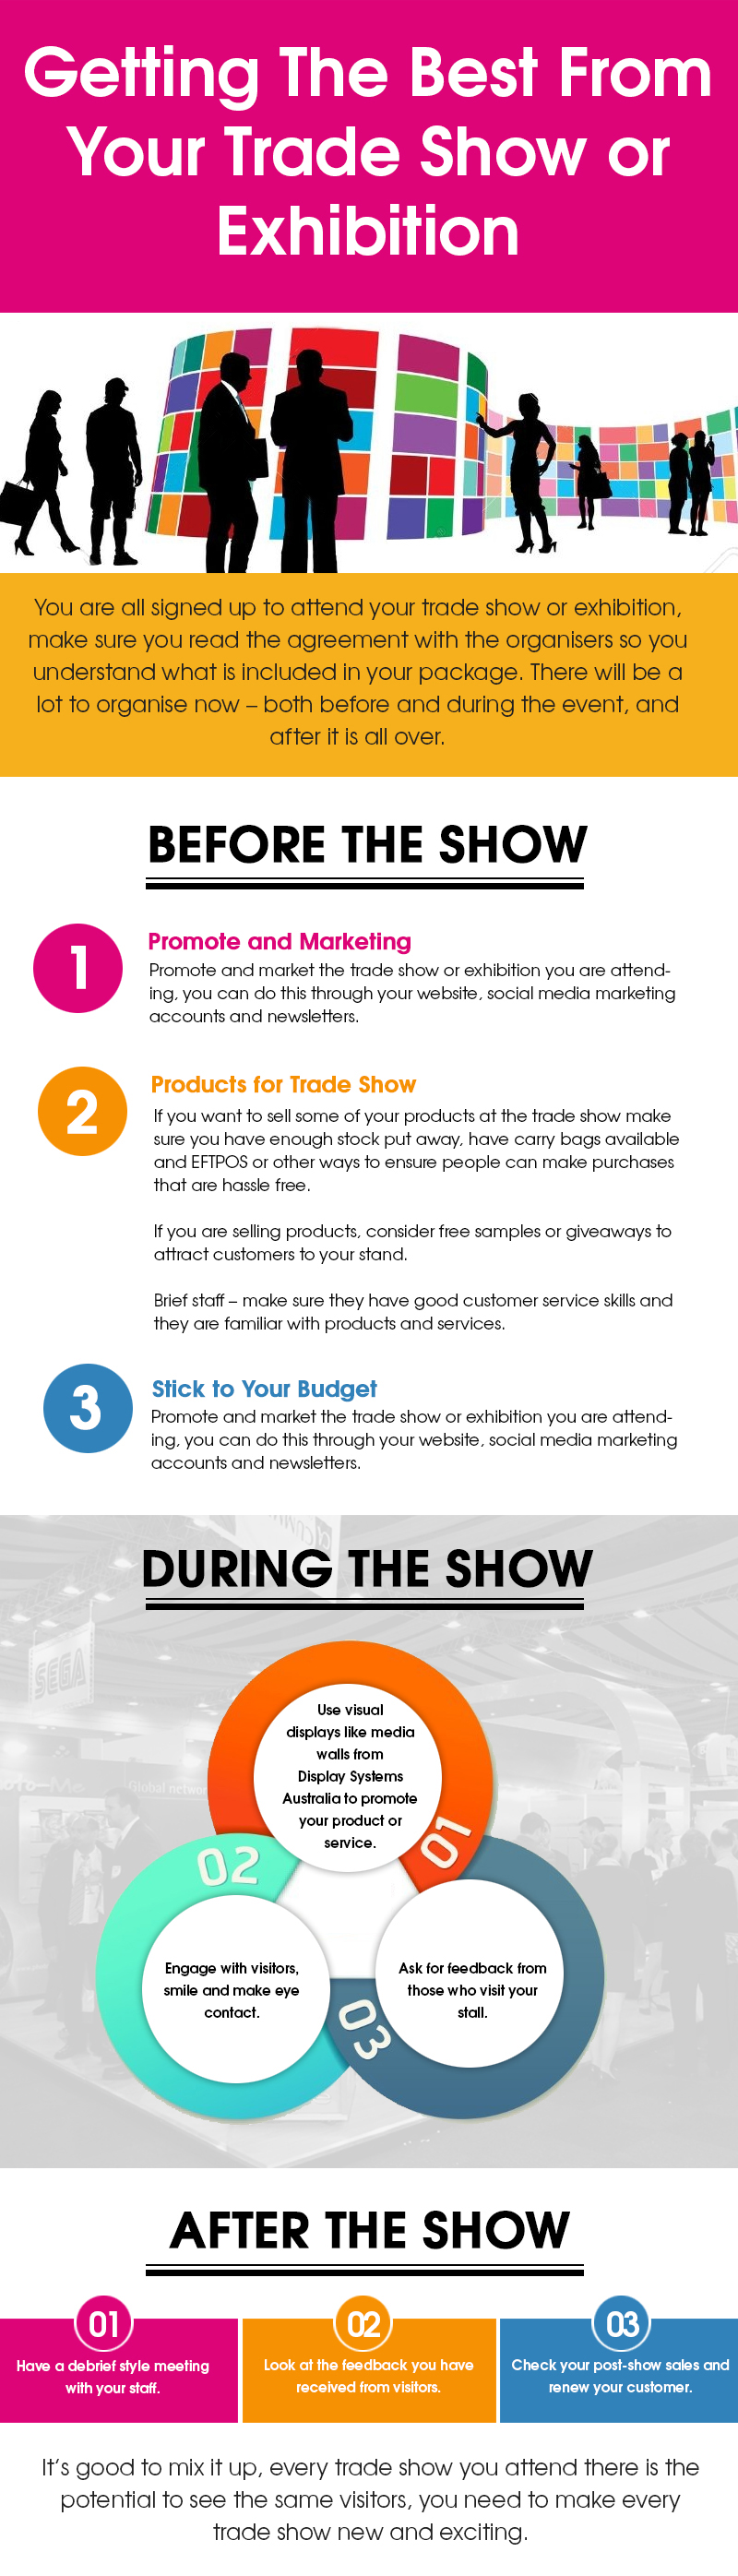 Getting The Best From Your Trade Show or Exhibition